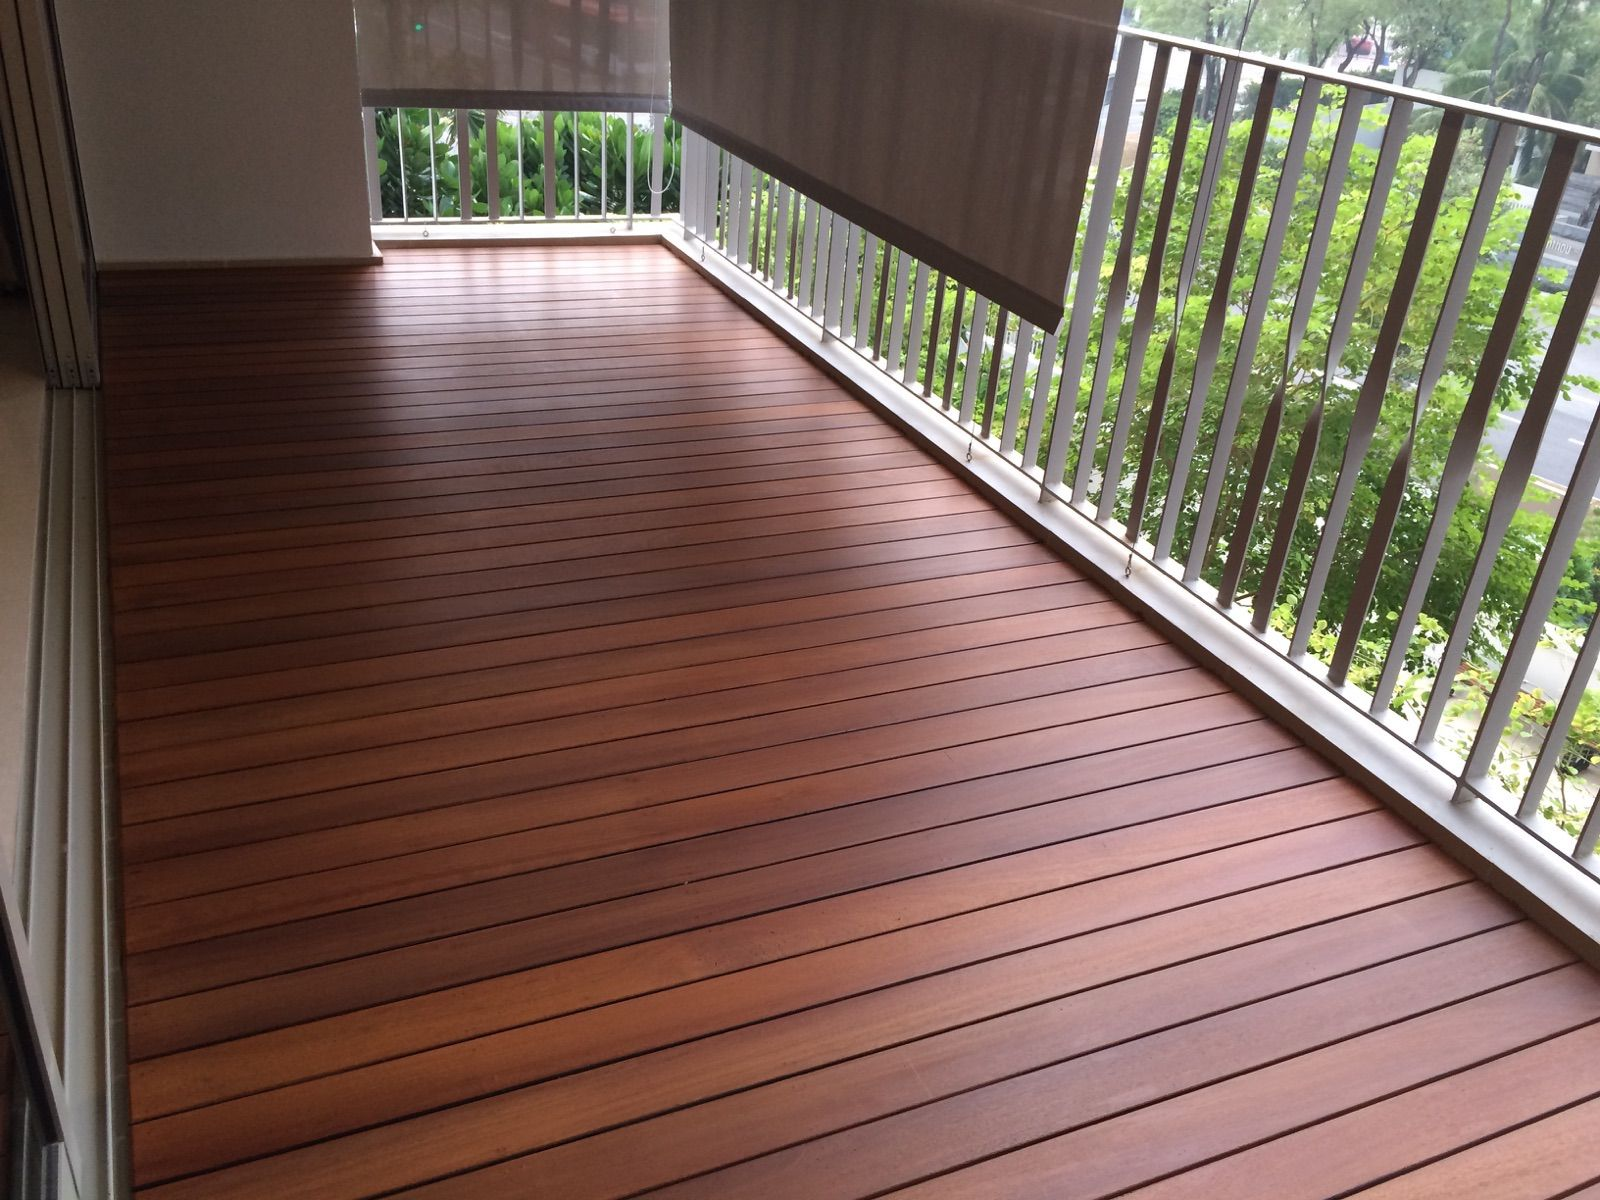 Composite Deck Tiles Composite Decking Tiles Prices Wpc Decking And Composite